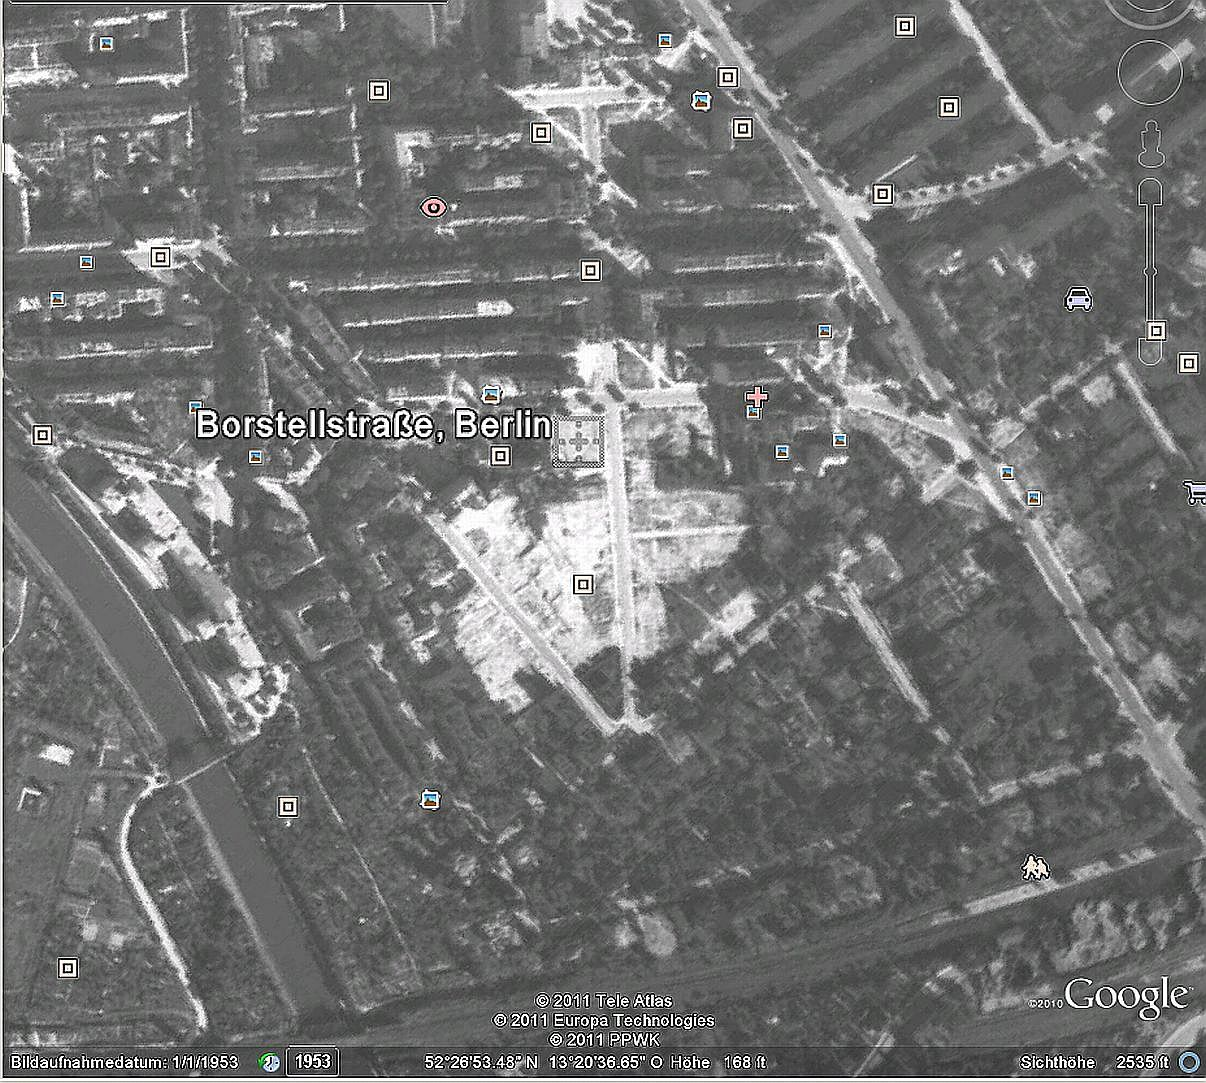 Nearly all of the old potsdamer strasse and half of the stephanstrasse has been razed to the ground at 23 august 1943